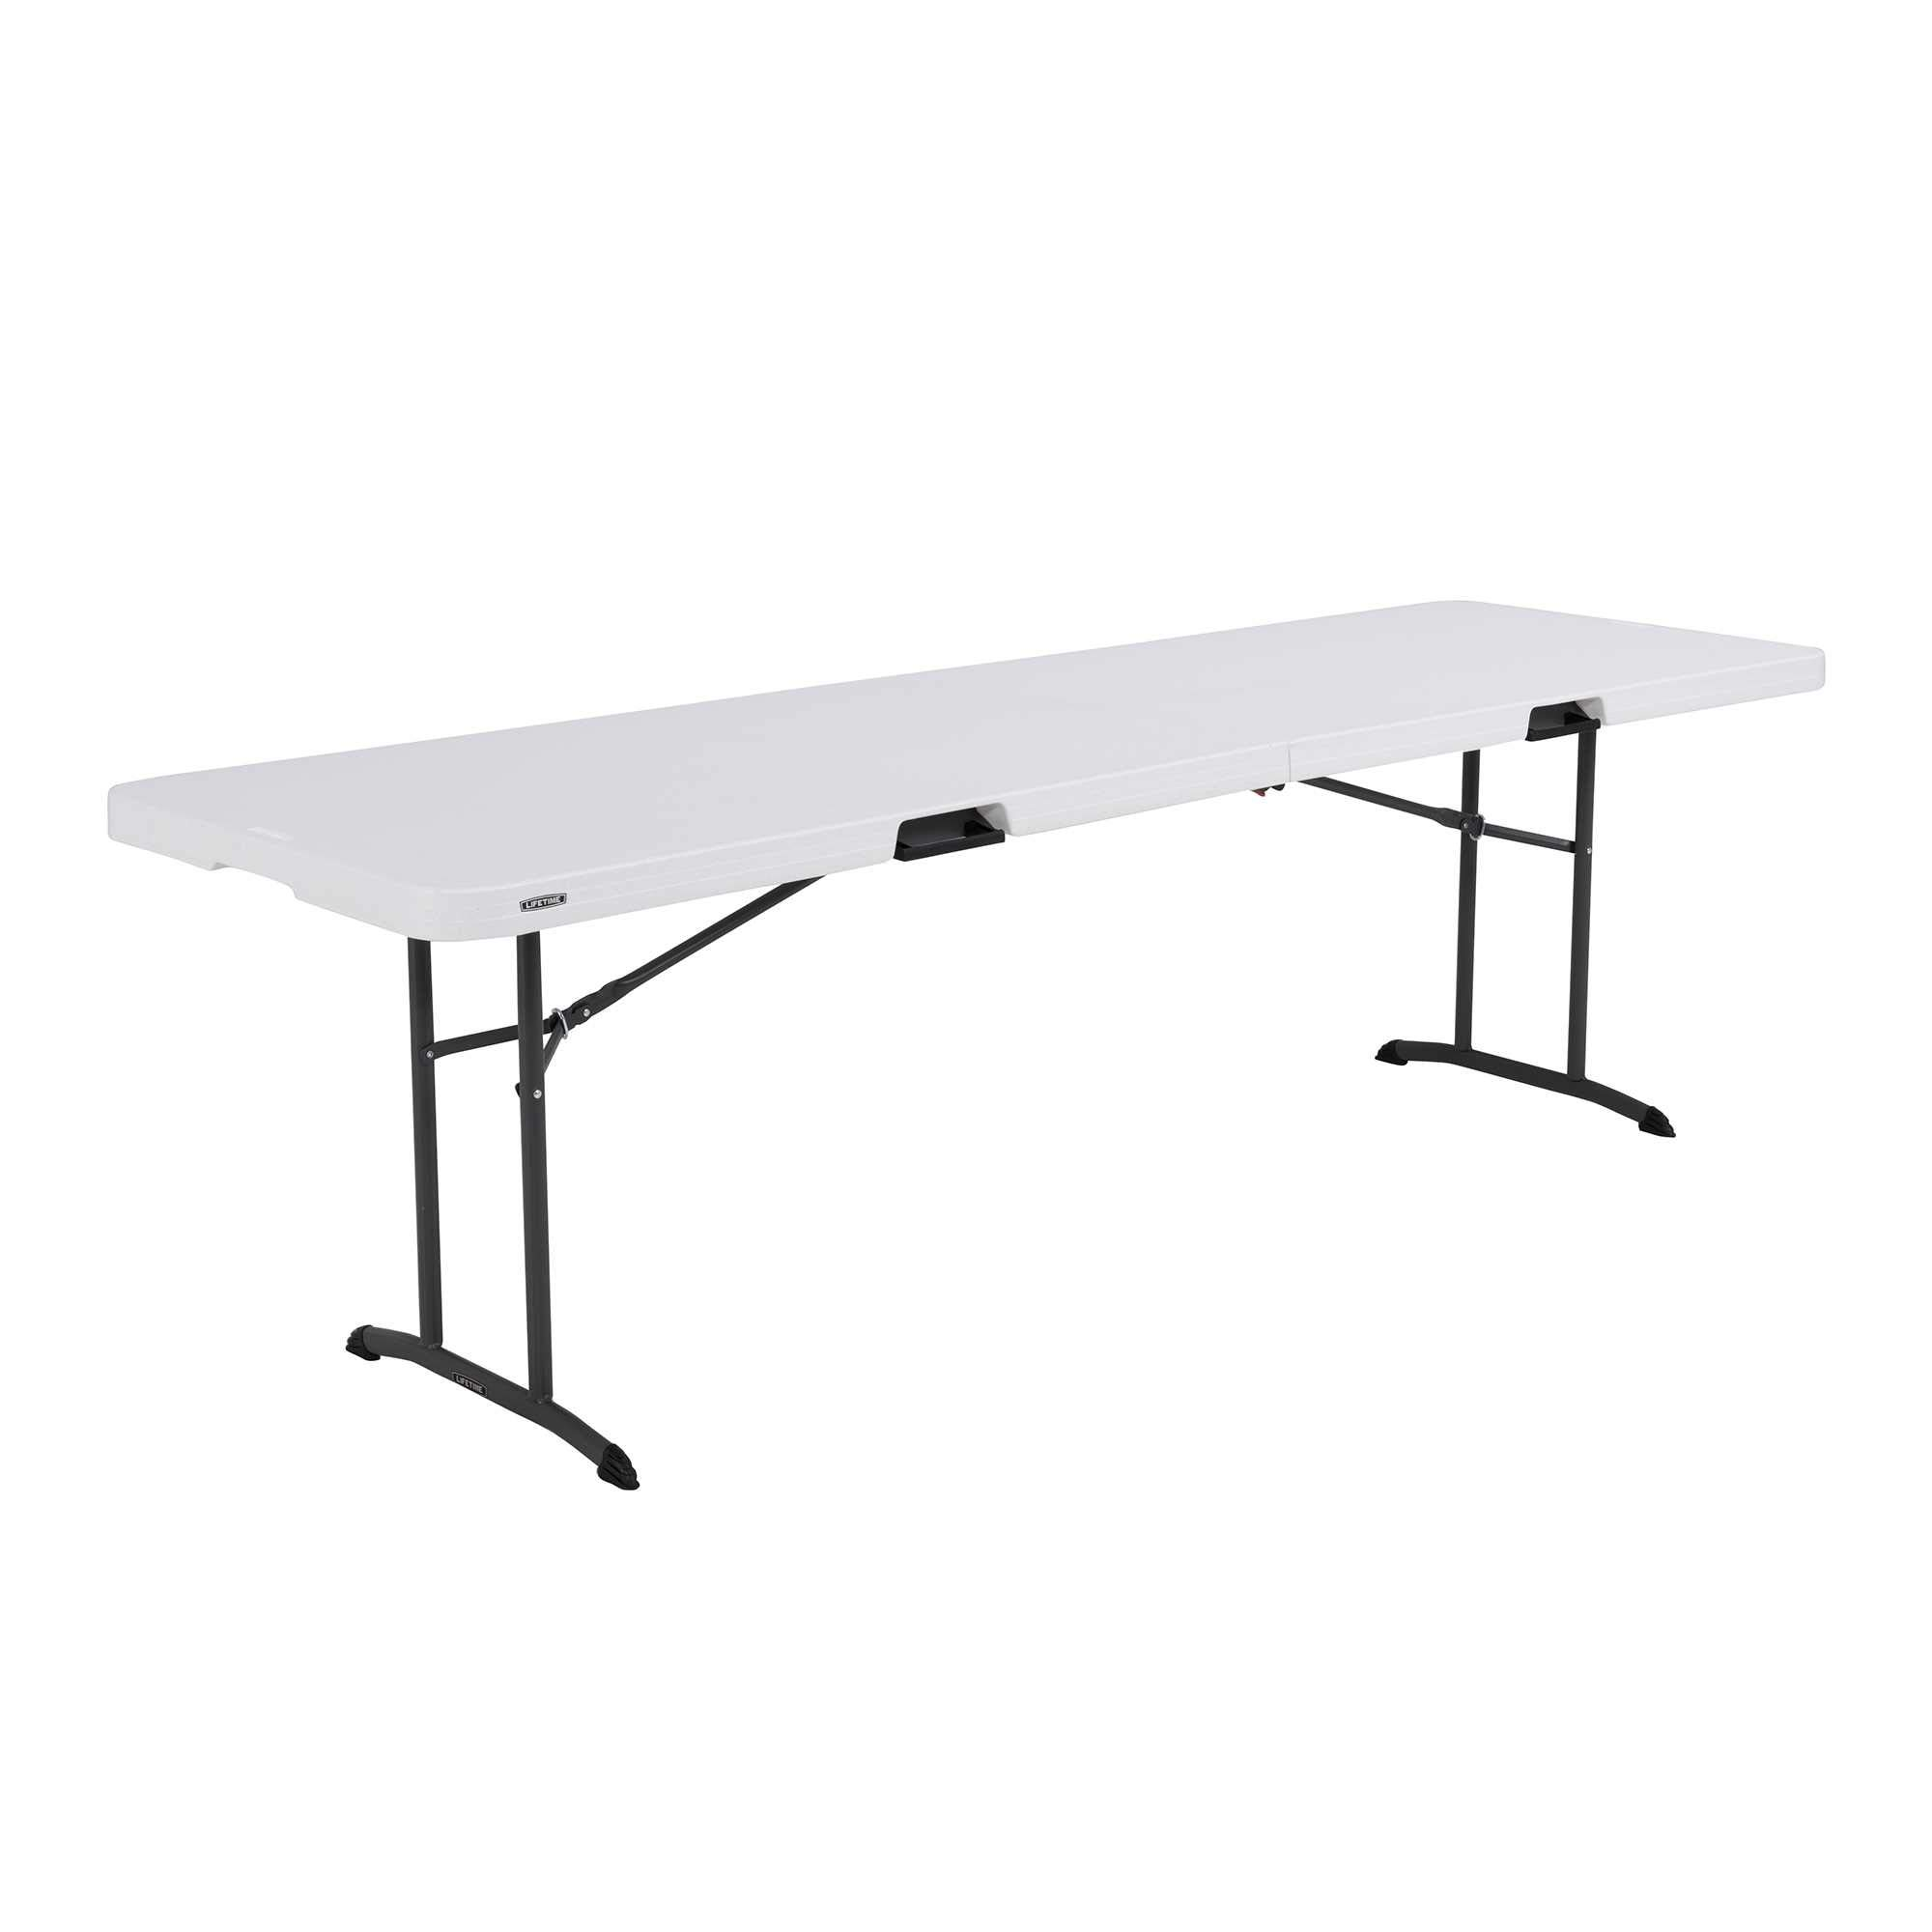 Lifetime 80733 Fold in Half Banquet Table, 8-Foot, White Granite by Lifetime